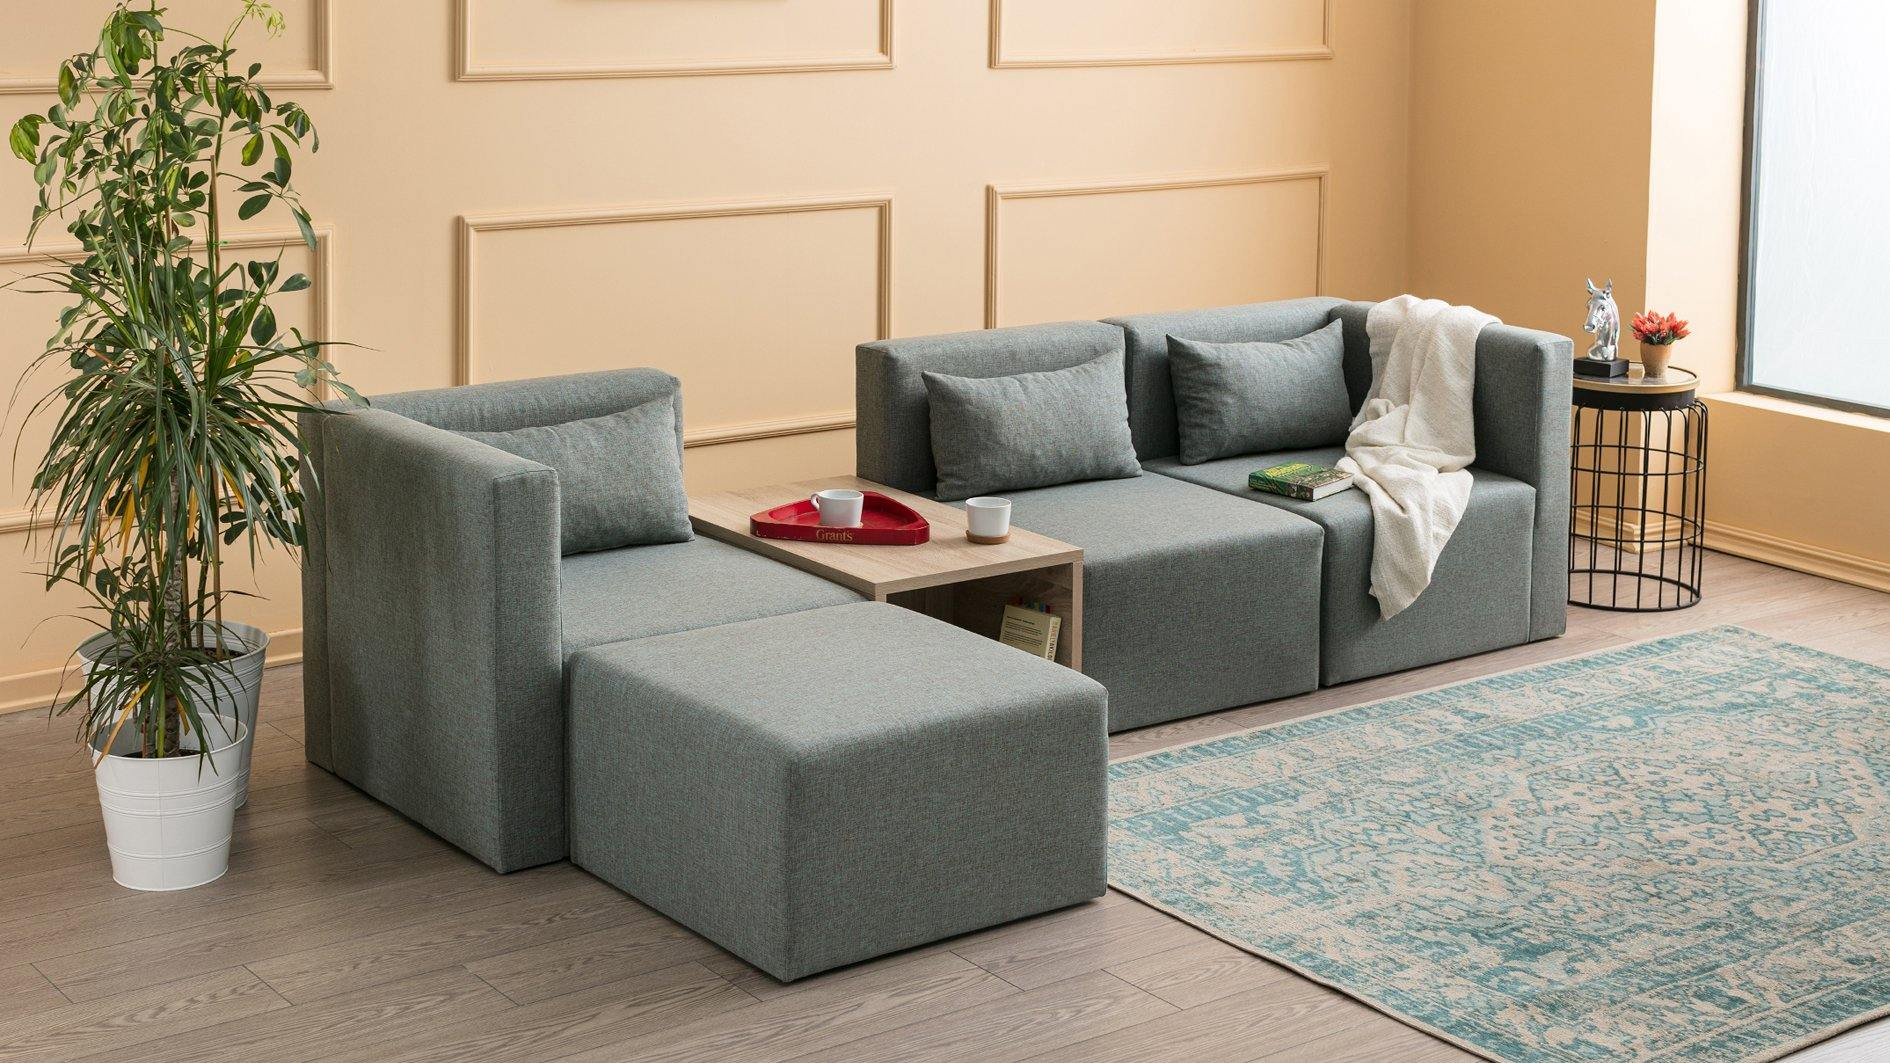 Plus Ottowa Moduler Corner Sofa with Coffee Table - Blue - Decorotika